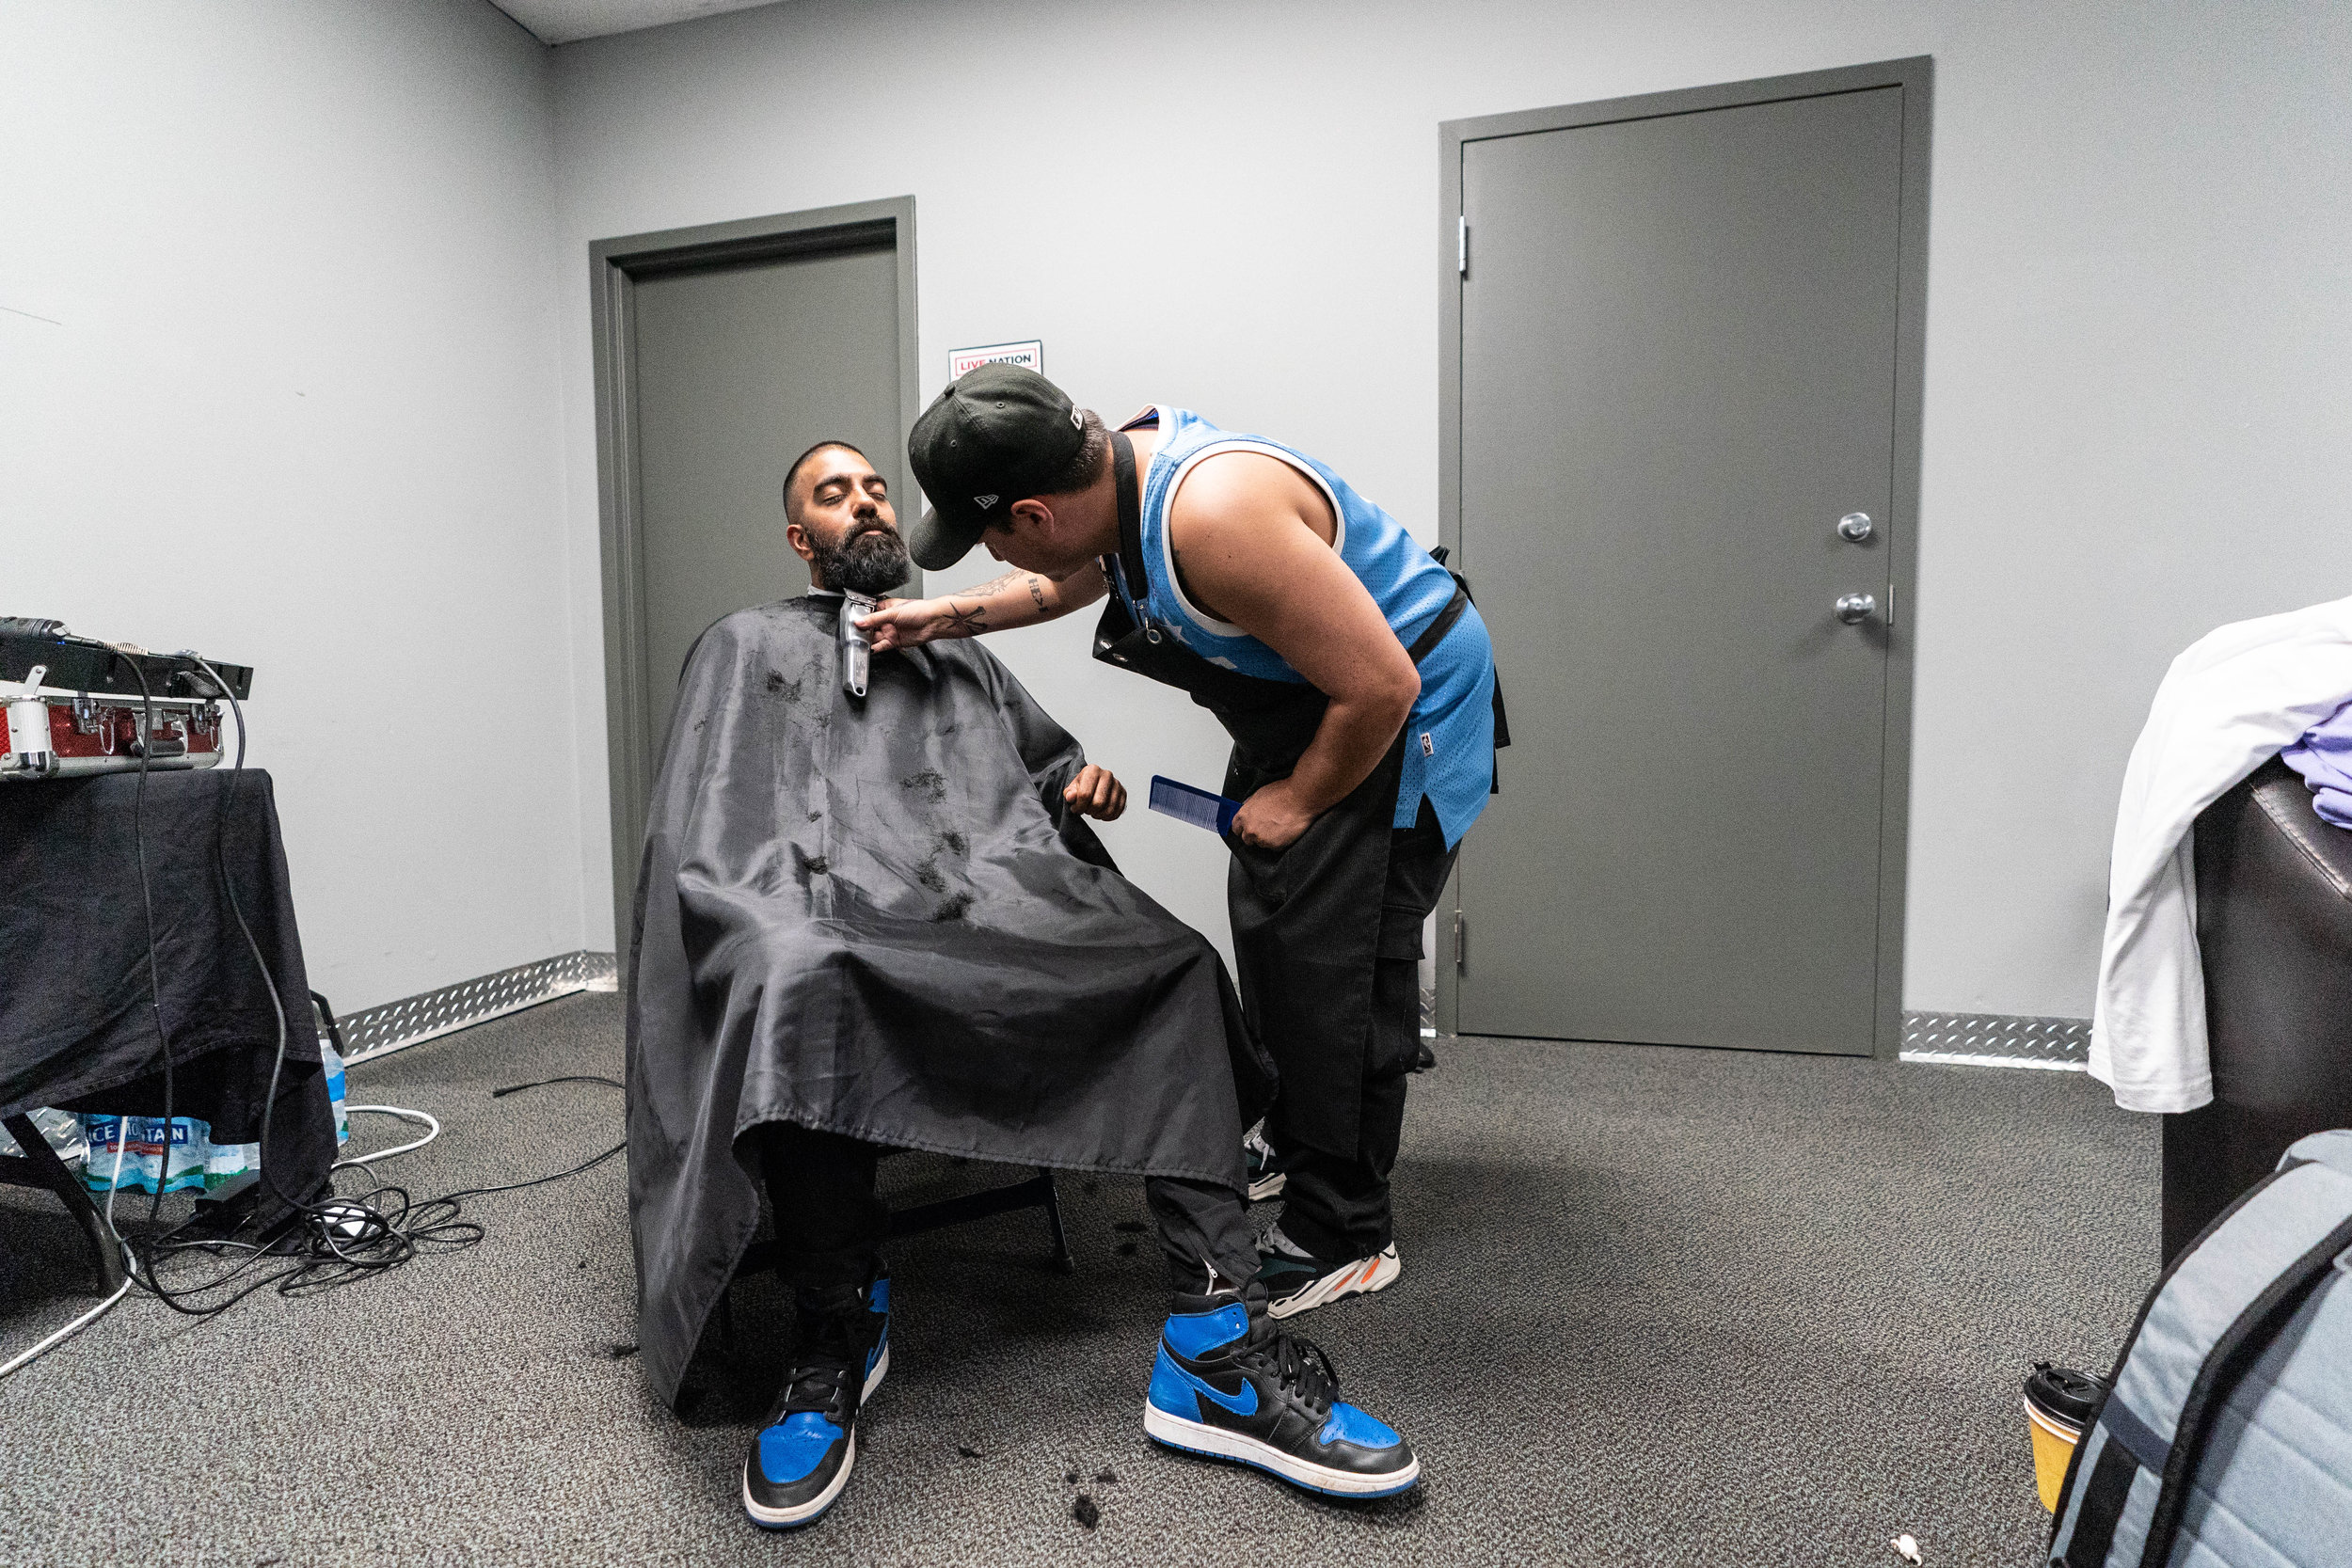 6ix getting a shape up before a show in St. Louis, 2018